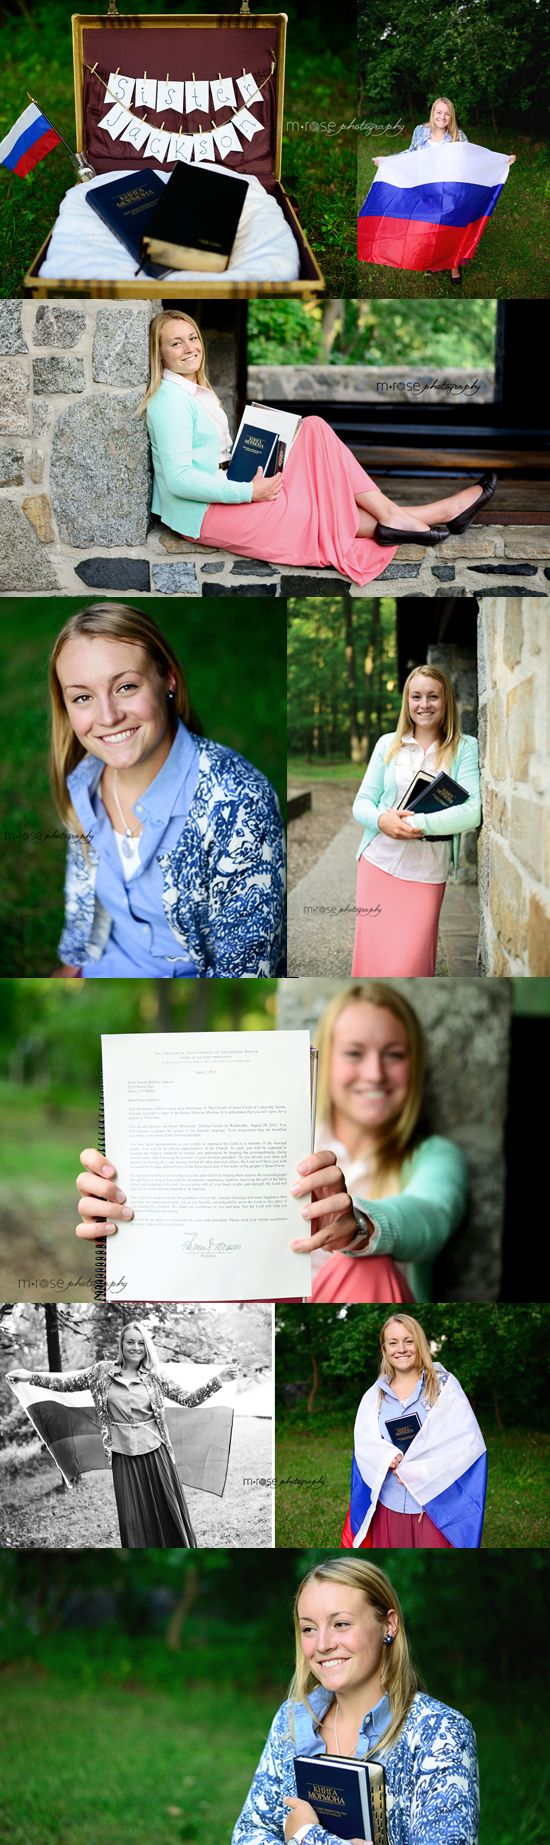 I like the Flag idea, especially for missionary kids. Sister Missionary Photos | M Rose Photography